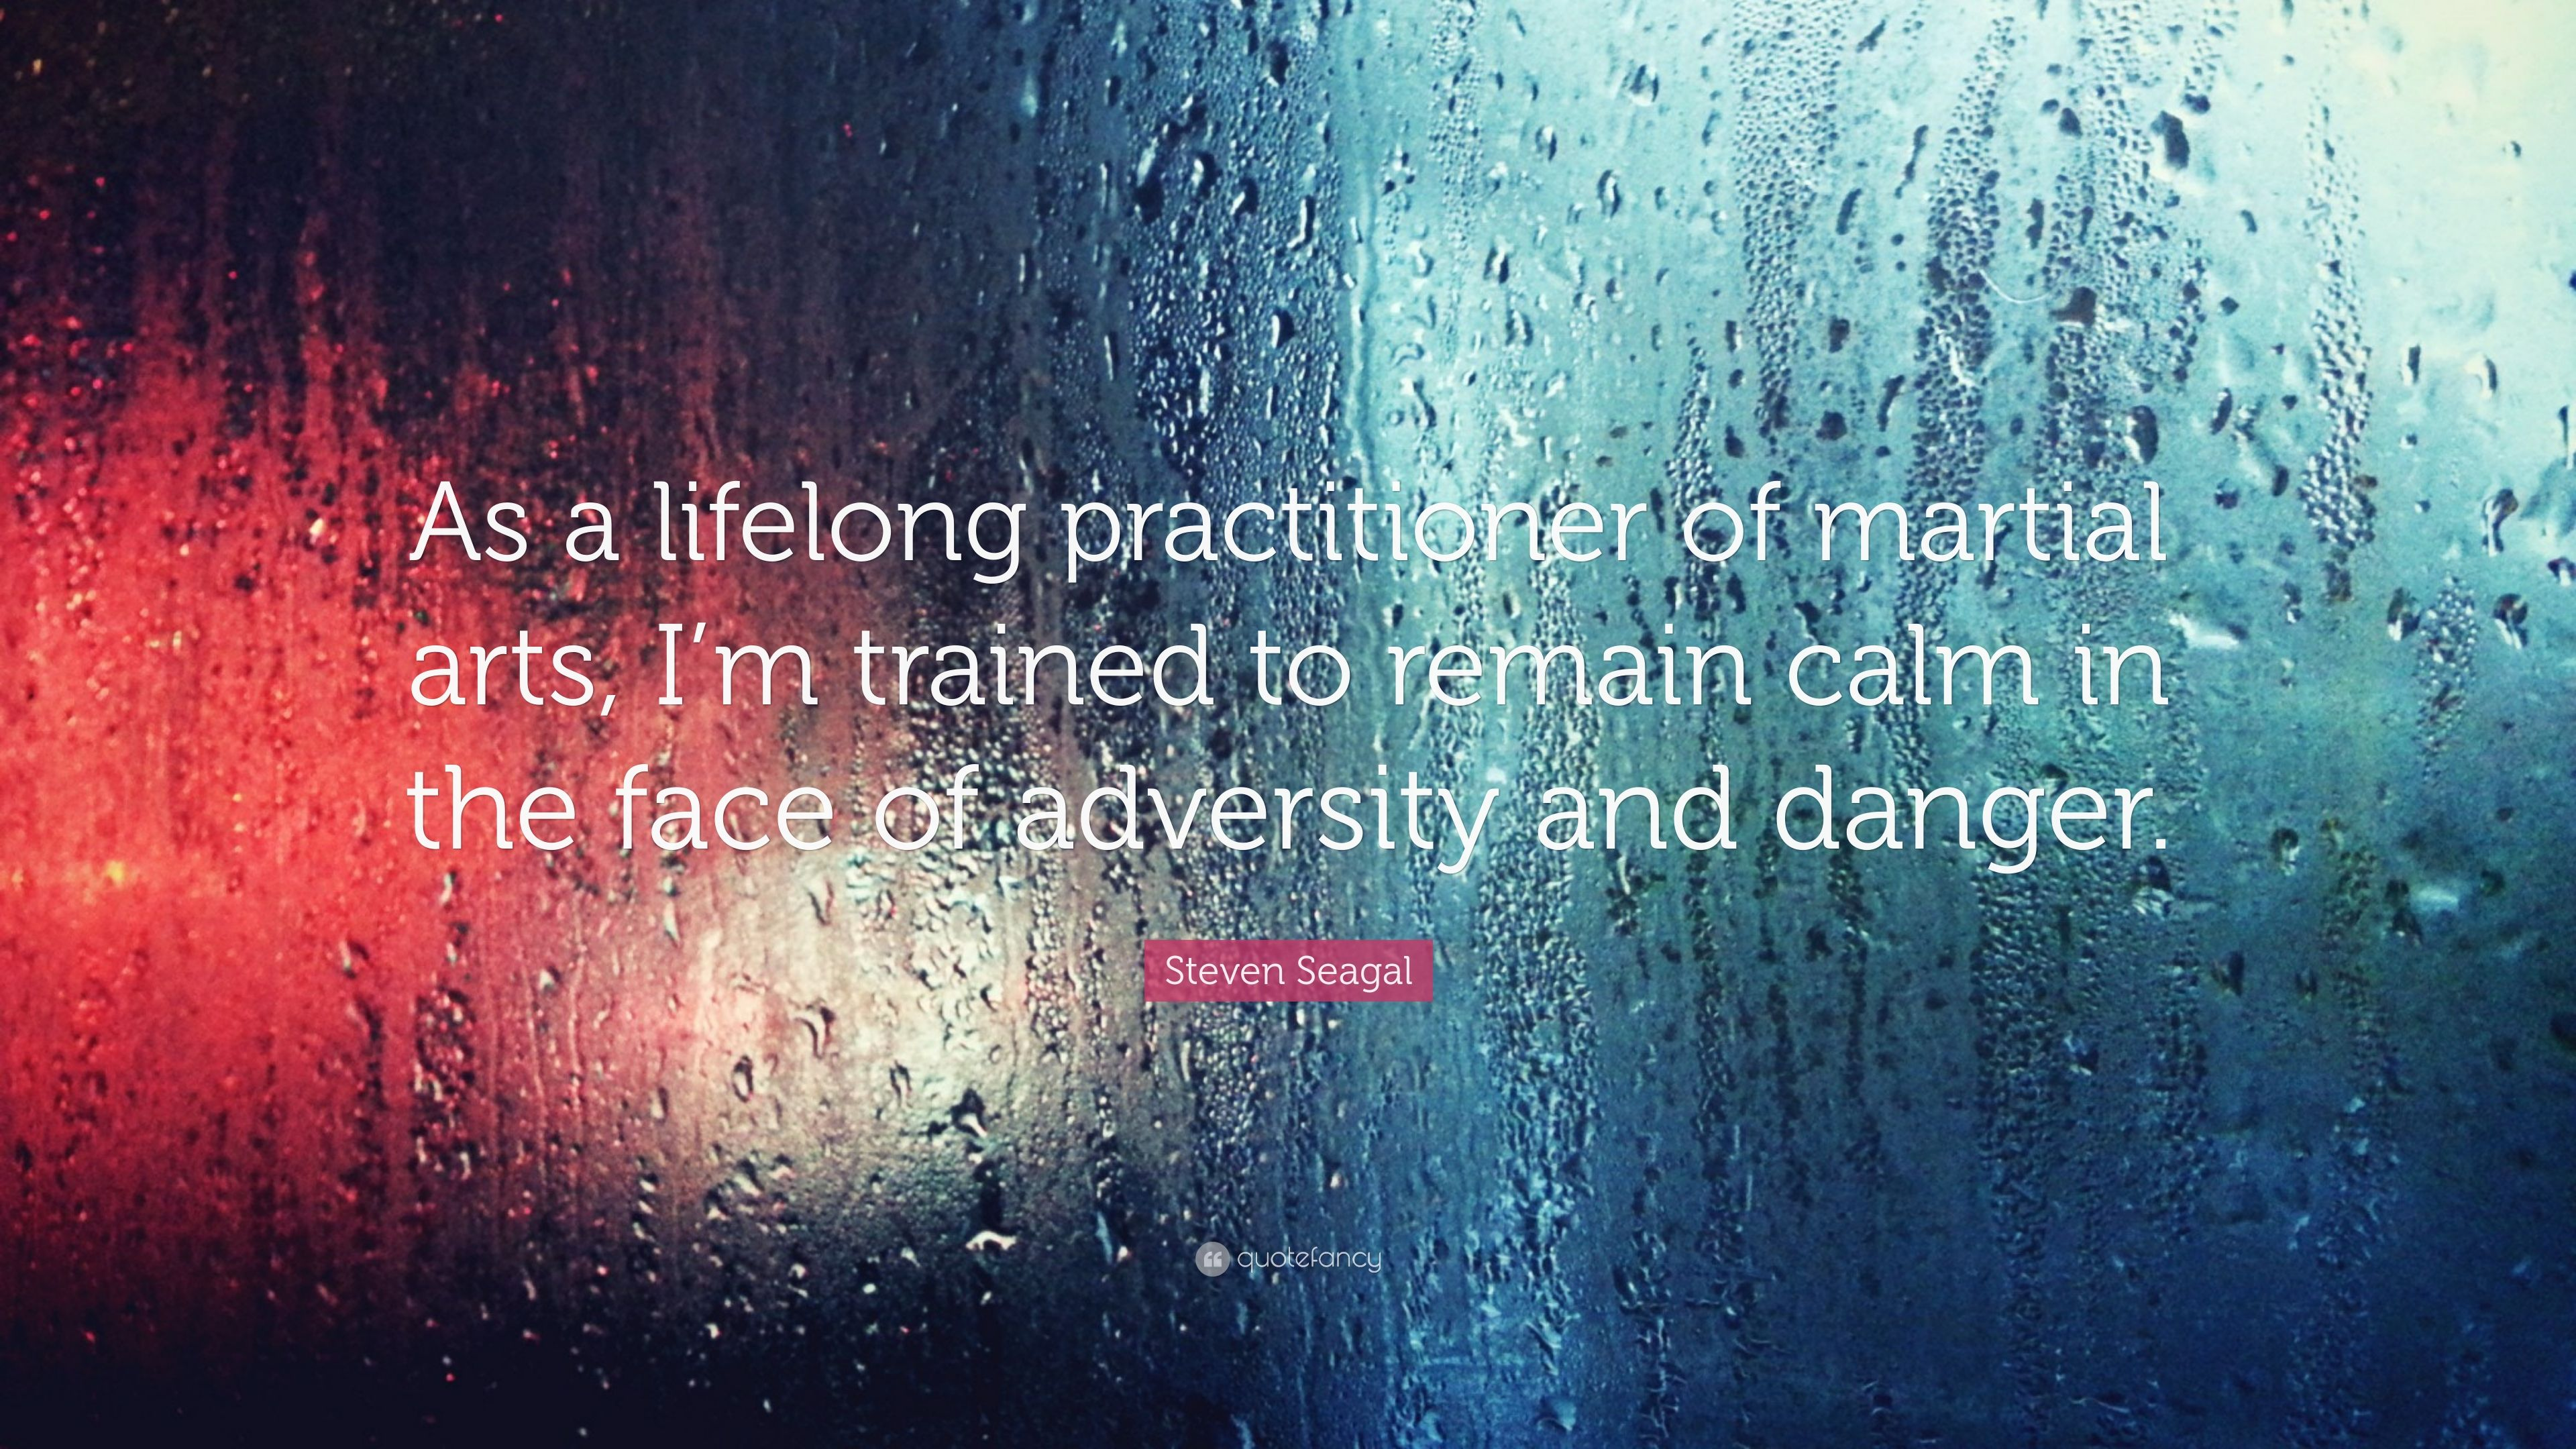 Steven Seagal Quote As A Lifelong Practitioner Of Martial Arts I M Trained To Remain Calm In The Face Of Adversity And Danger 7 Wallpapers Quotefancy